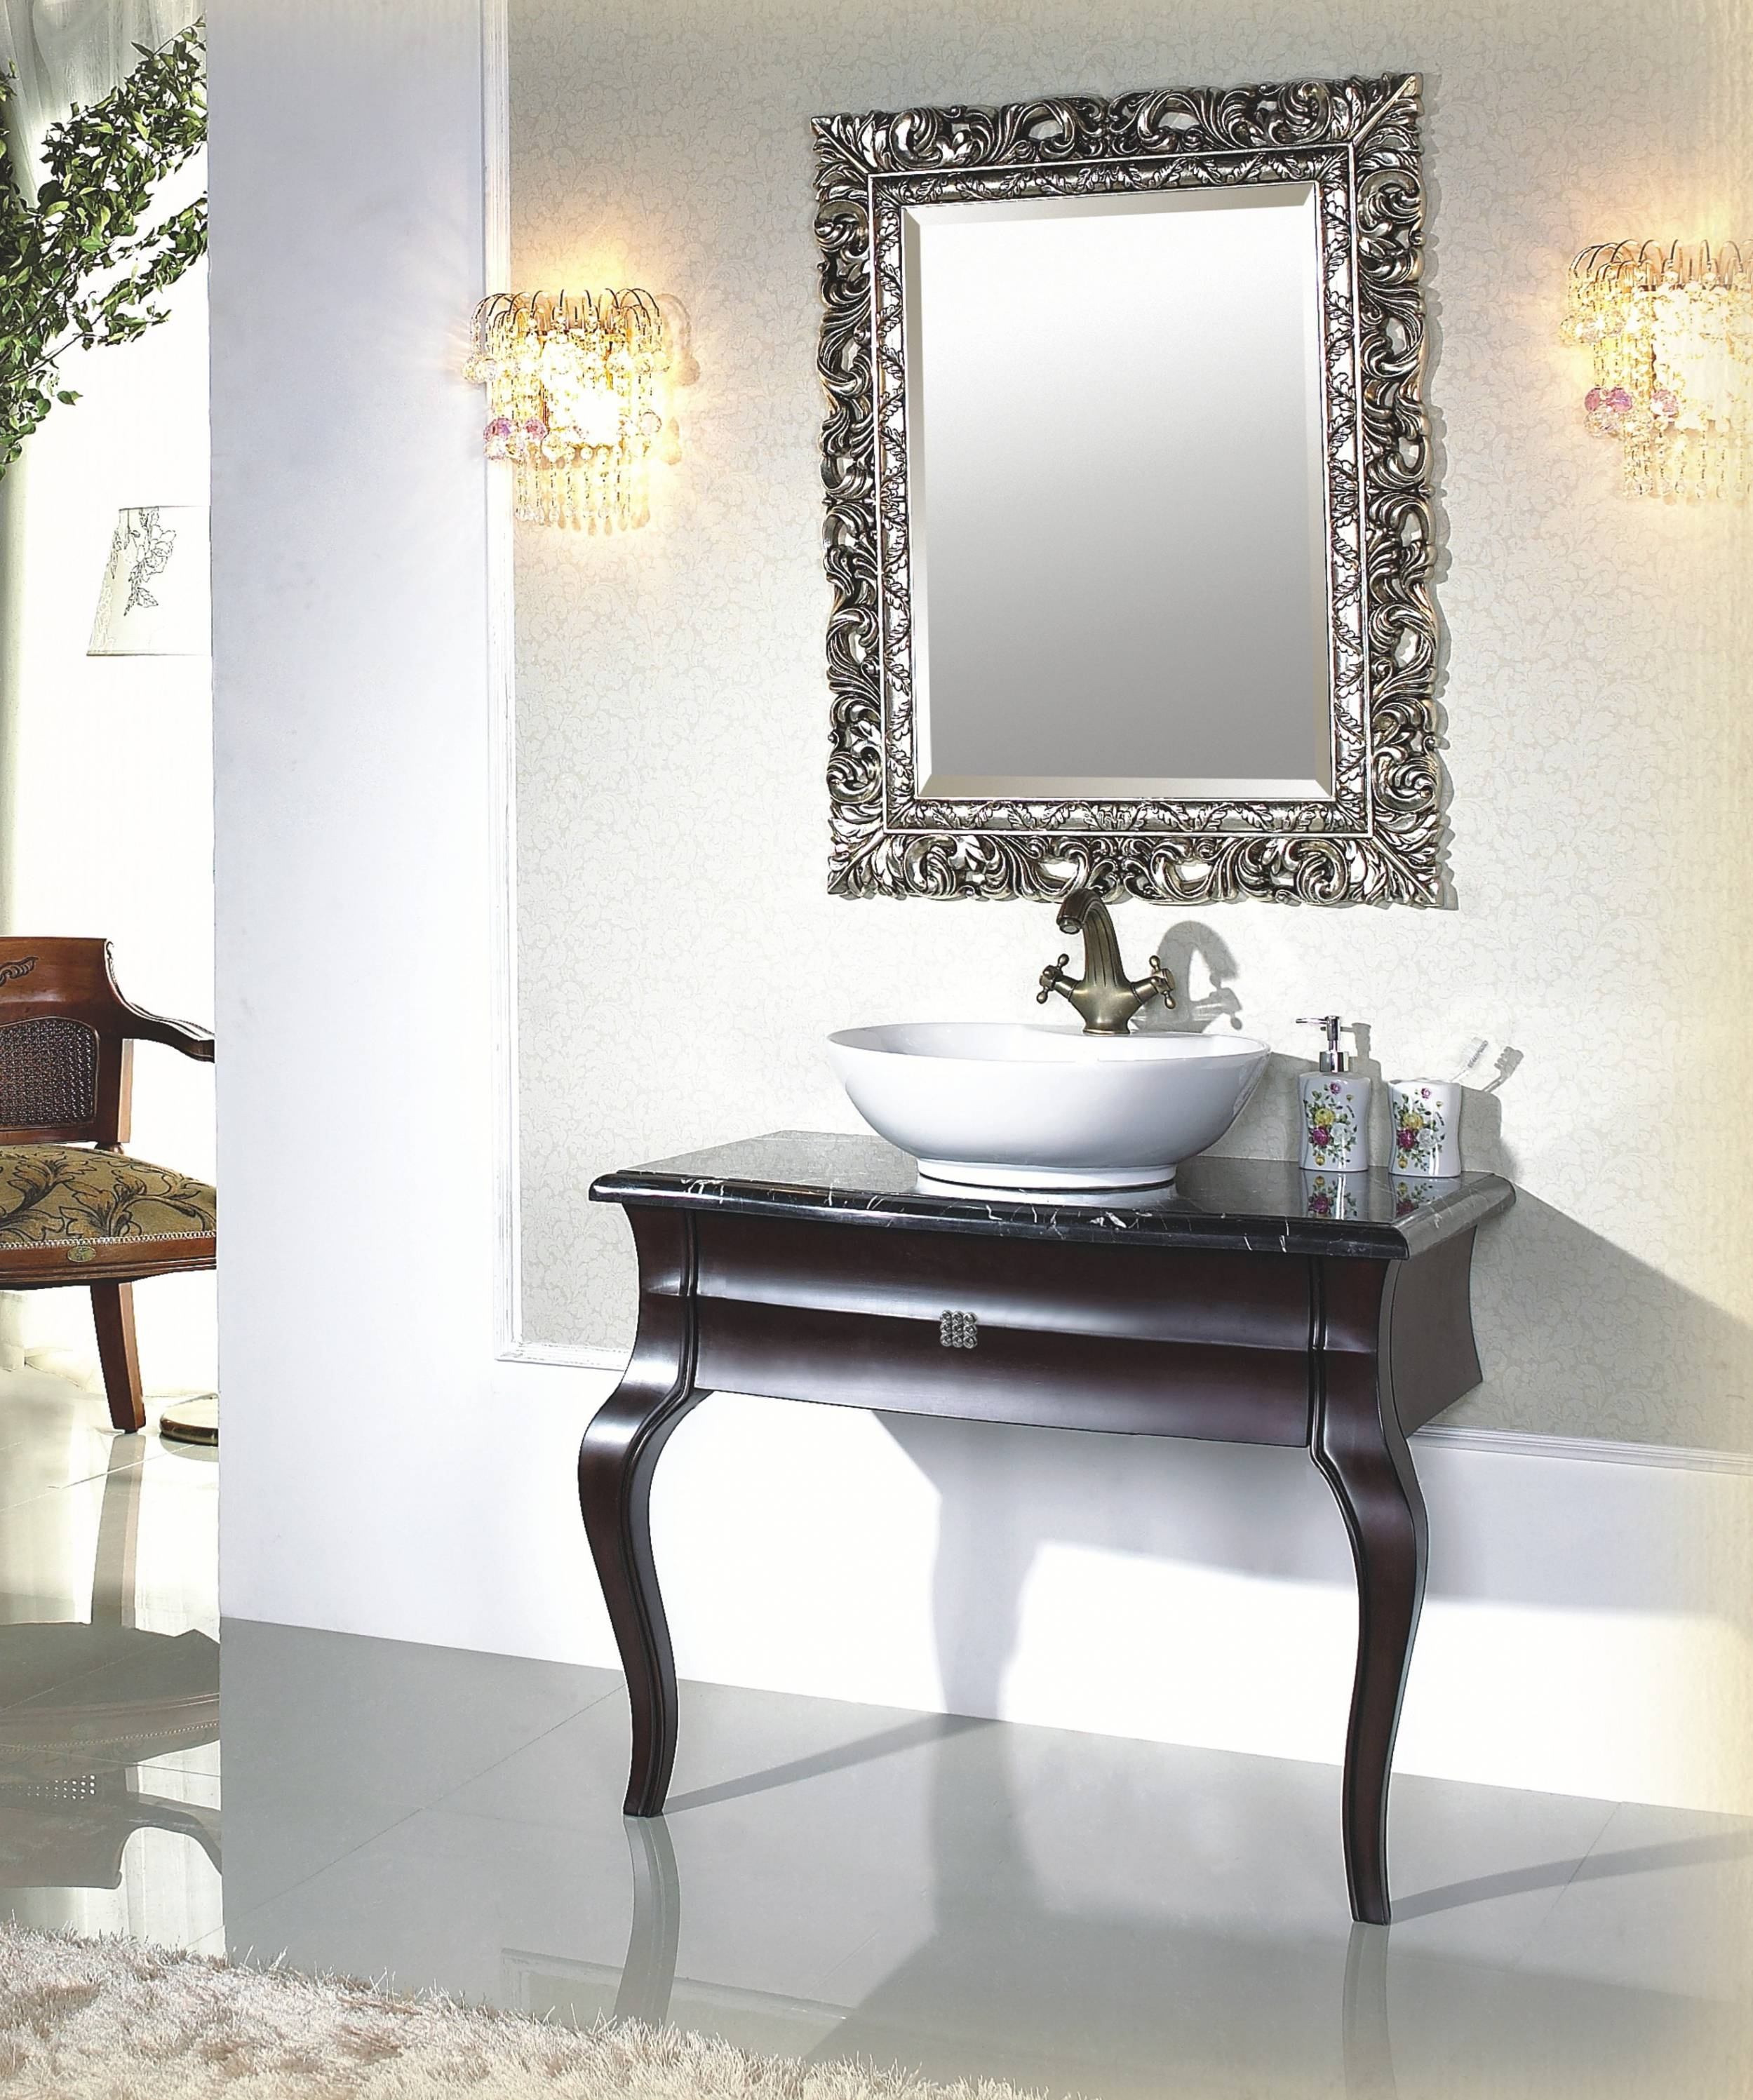 Fashionable Antique Bathroom Mirror 14 Best Vintage Light And Pertaining To Style Mirrors